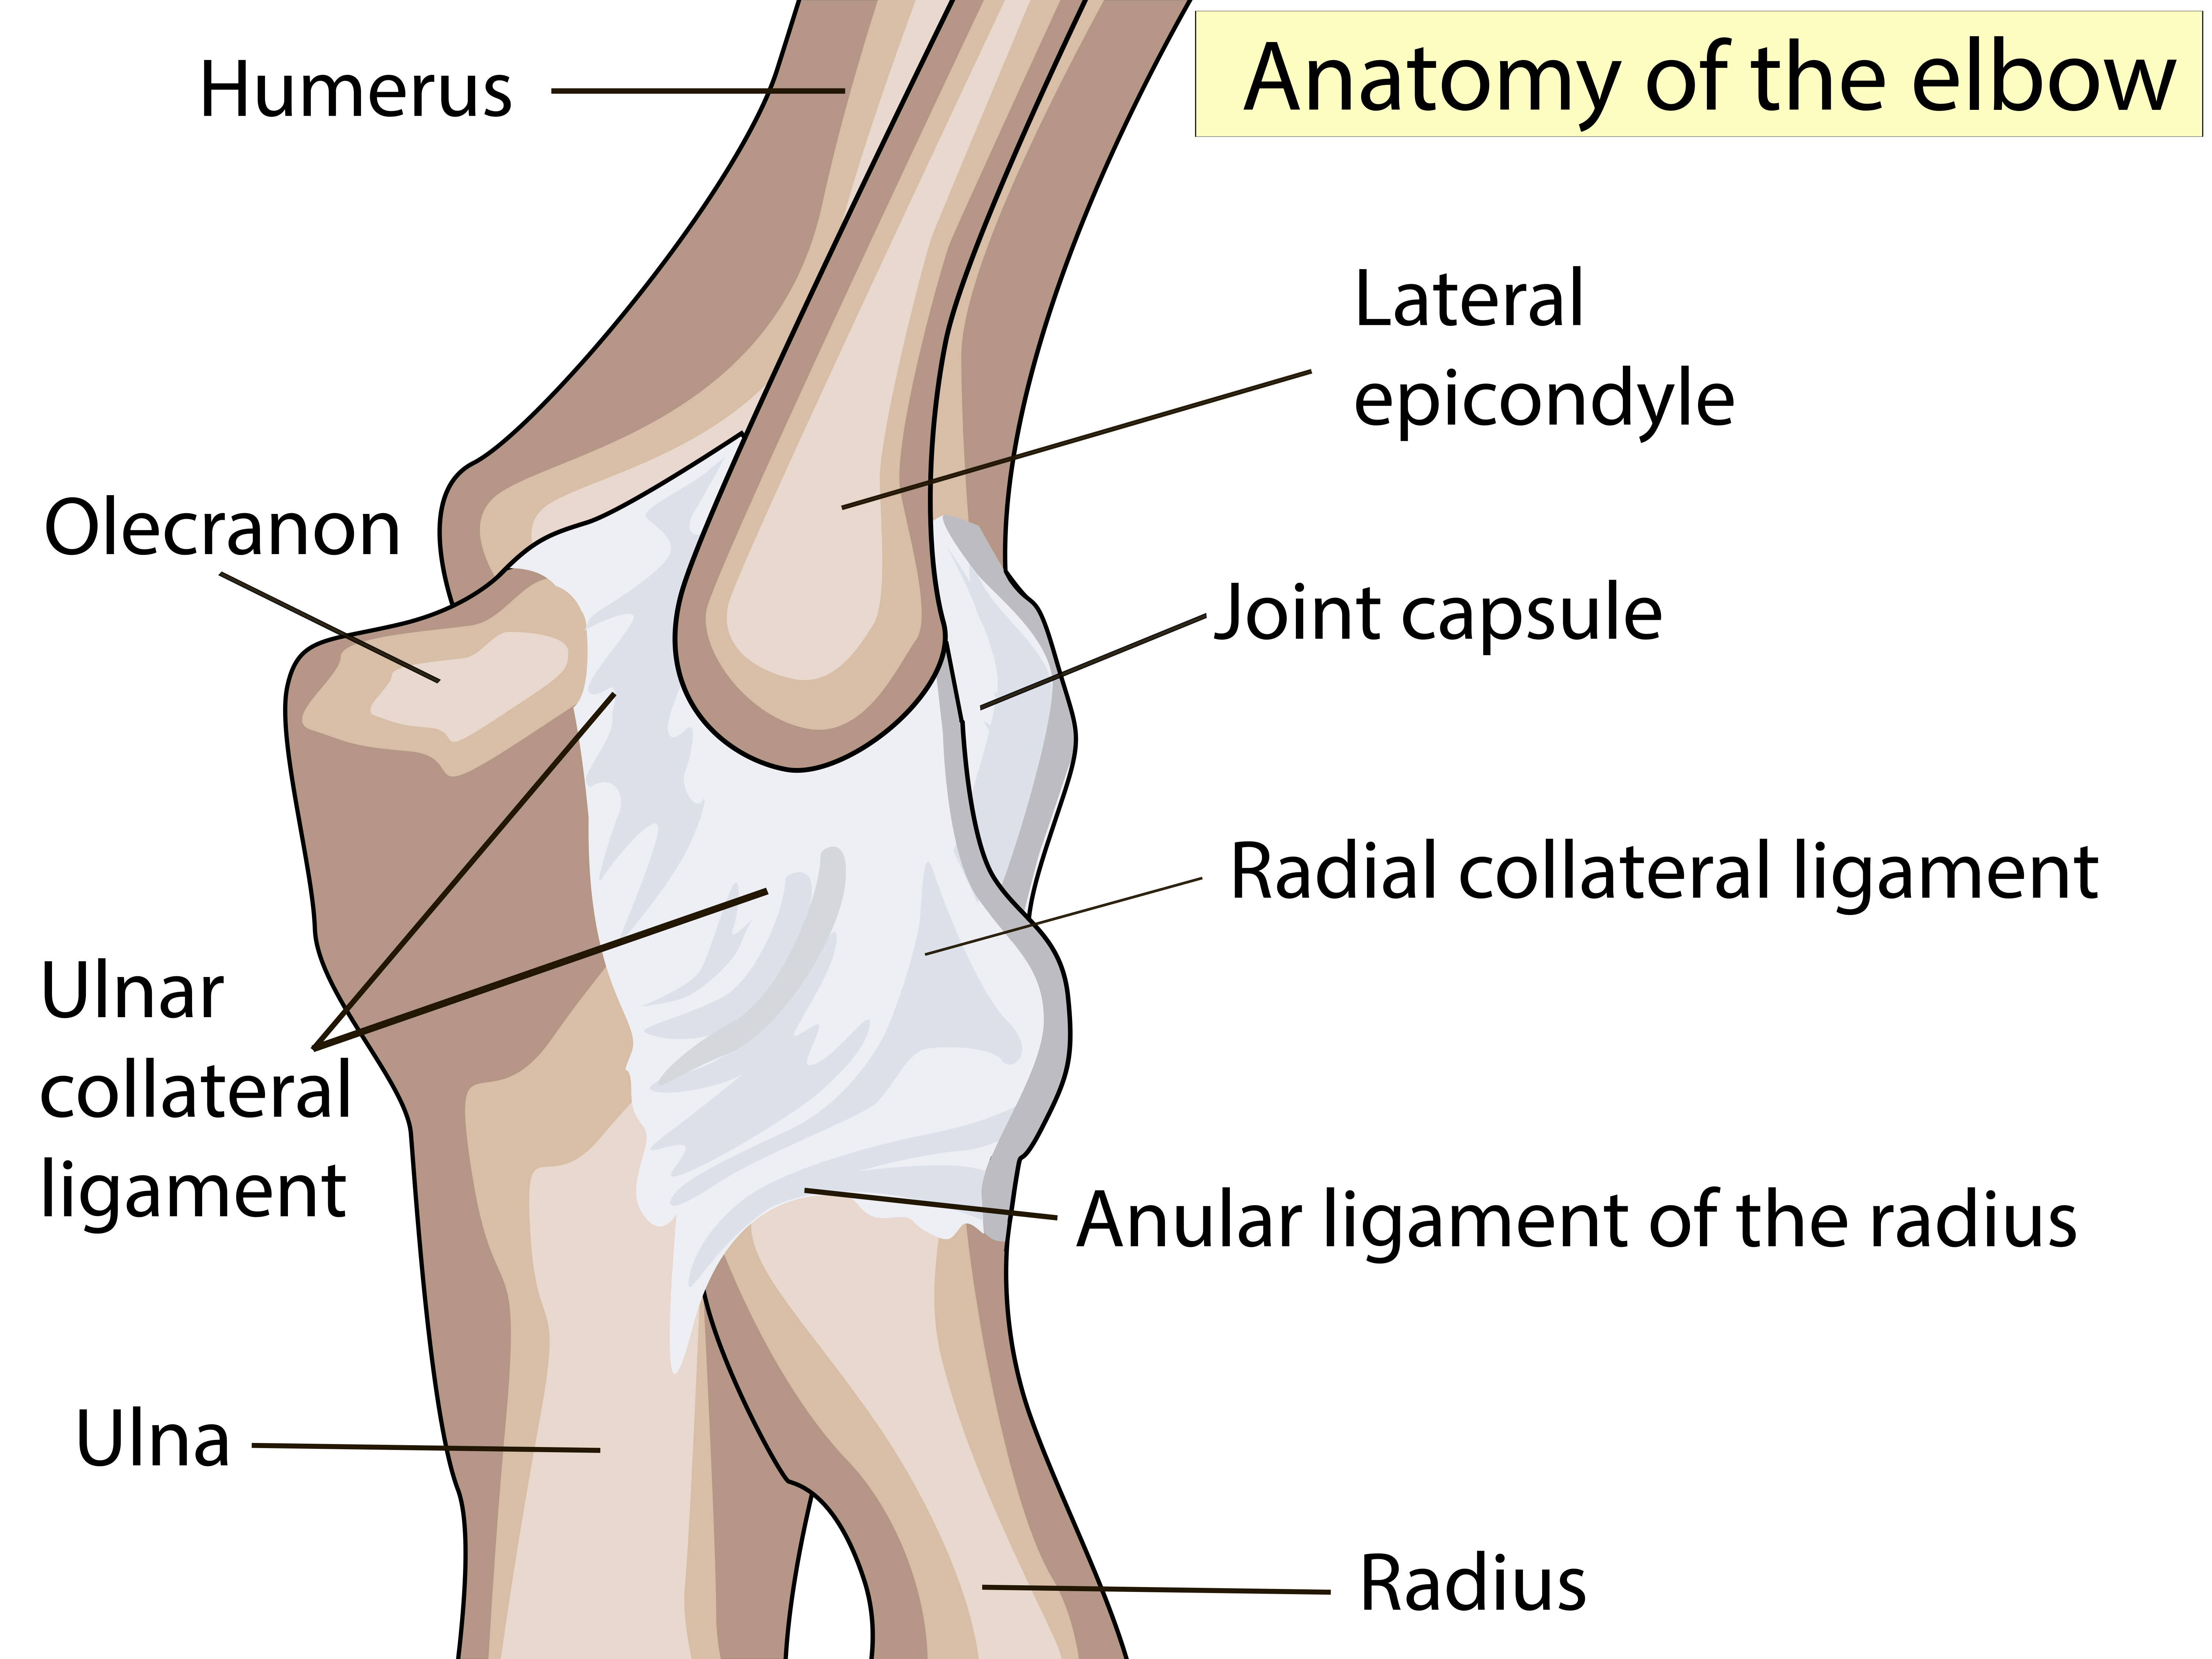 Common Tendon And Soft Tissue Injuries In The Elbow